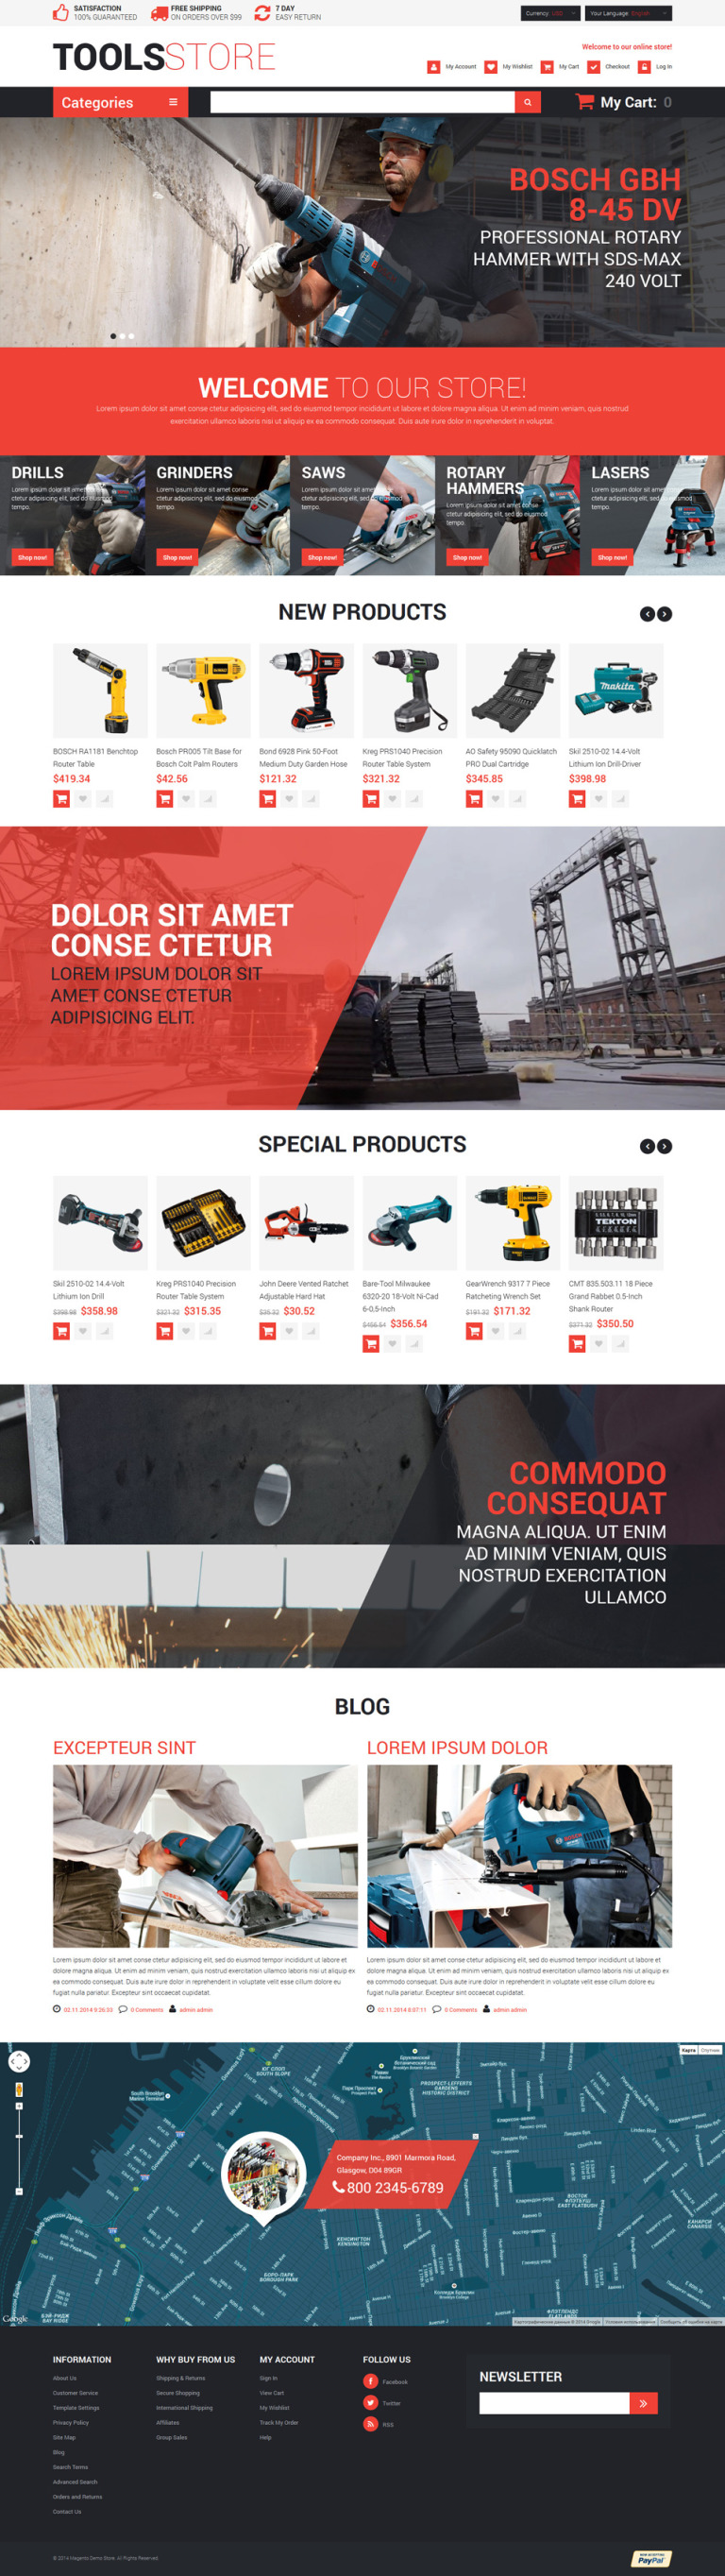 Contractor Tools Magento Theme New Screenshots BIG